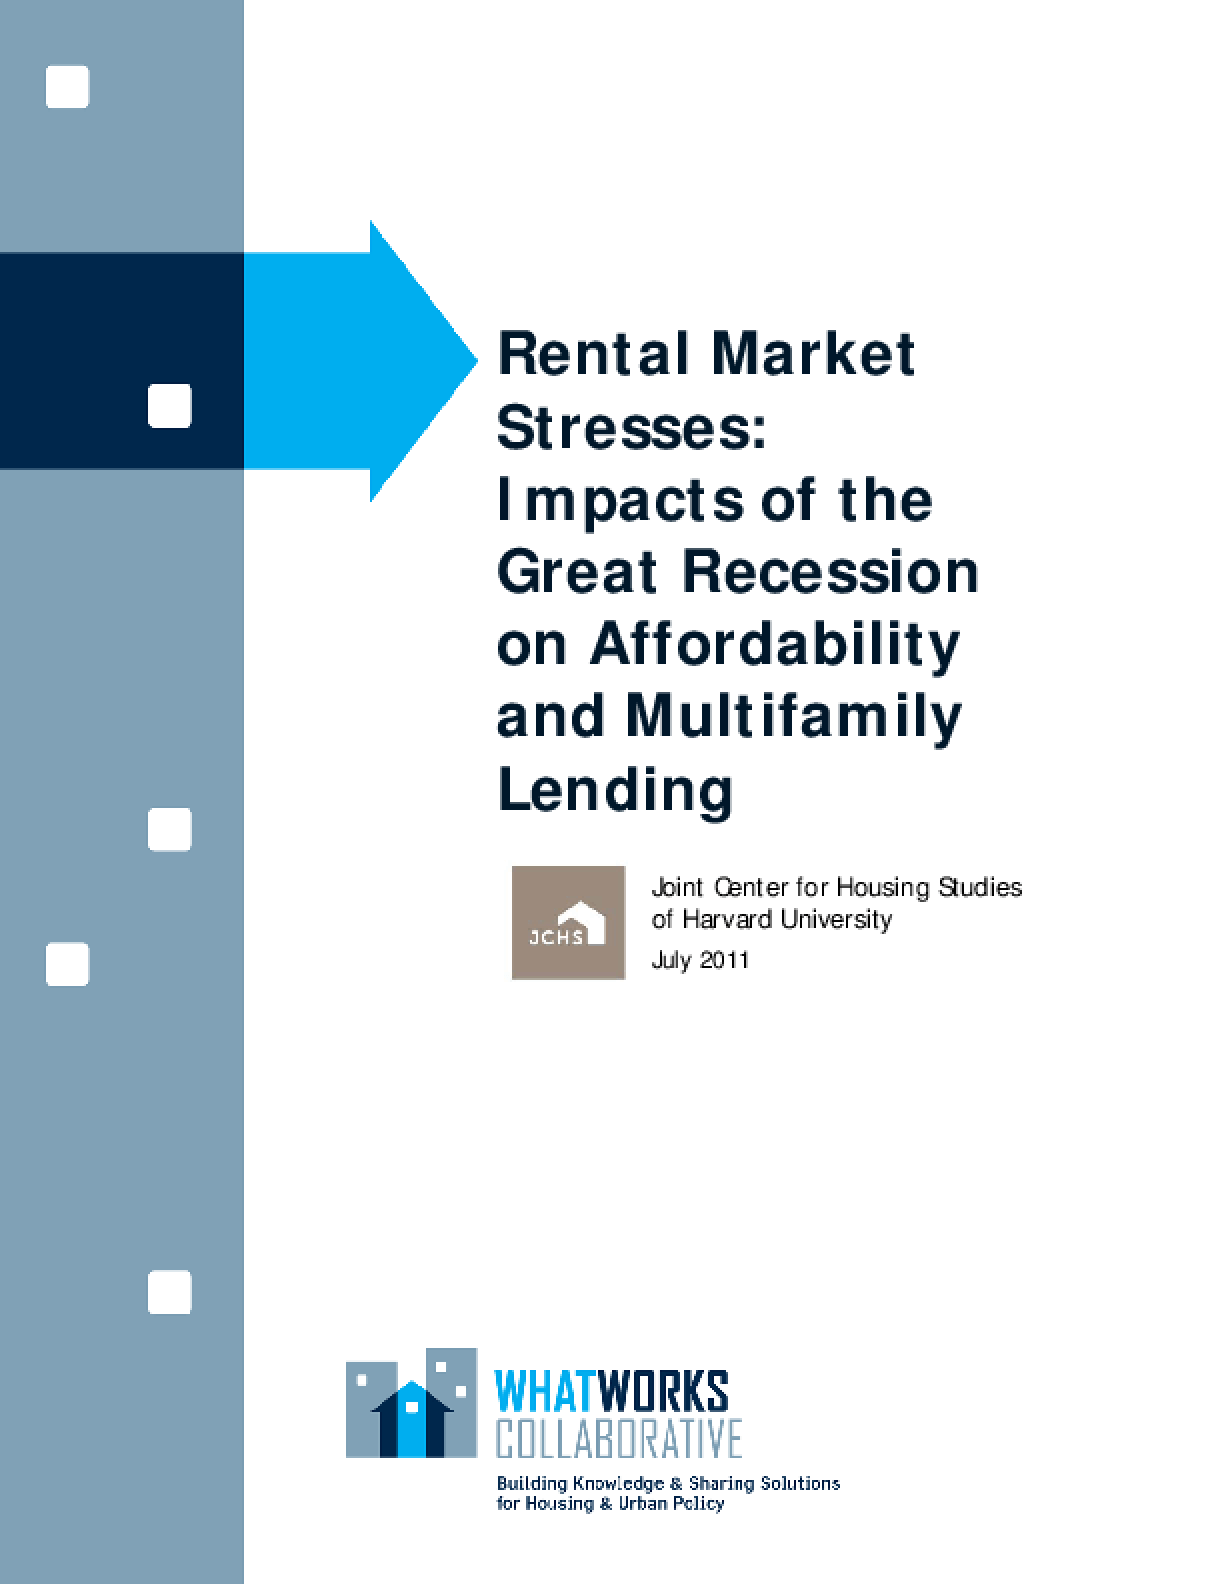 Rental Market Stresses: Impacts of the Great Recession on Affordability and Multifamily Lending